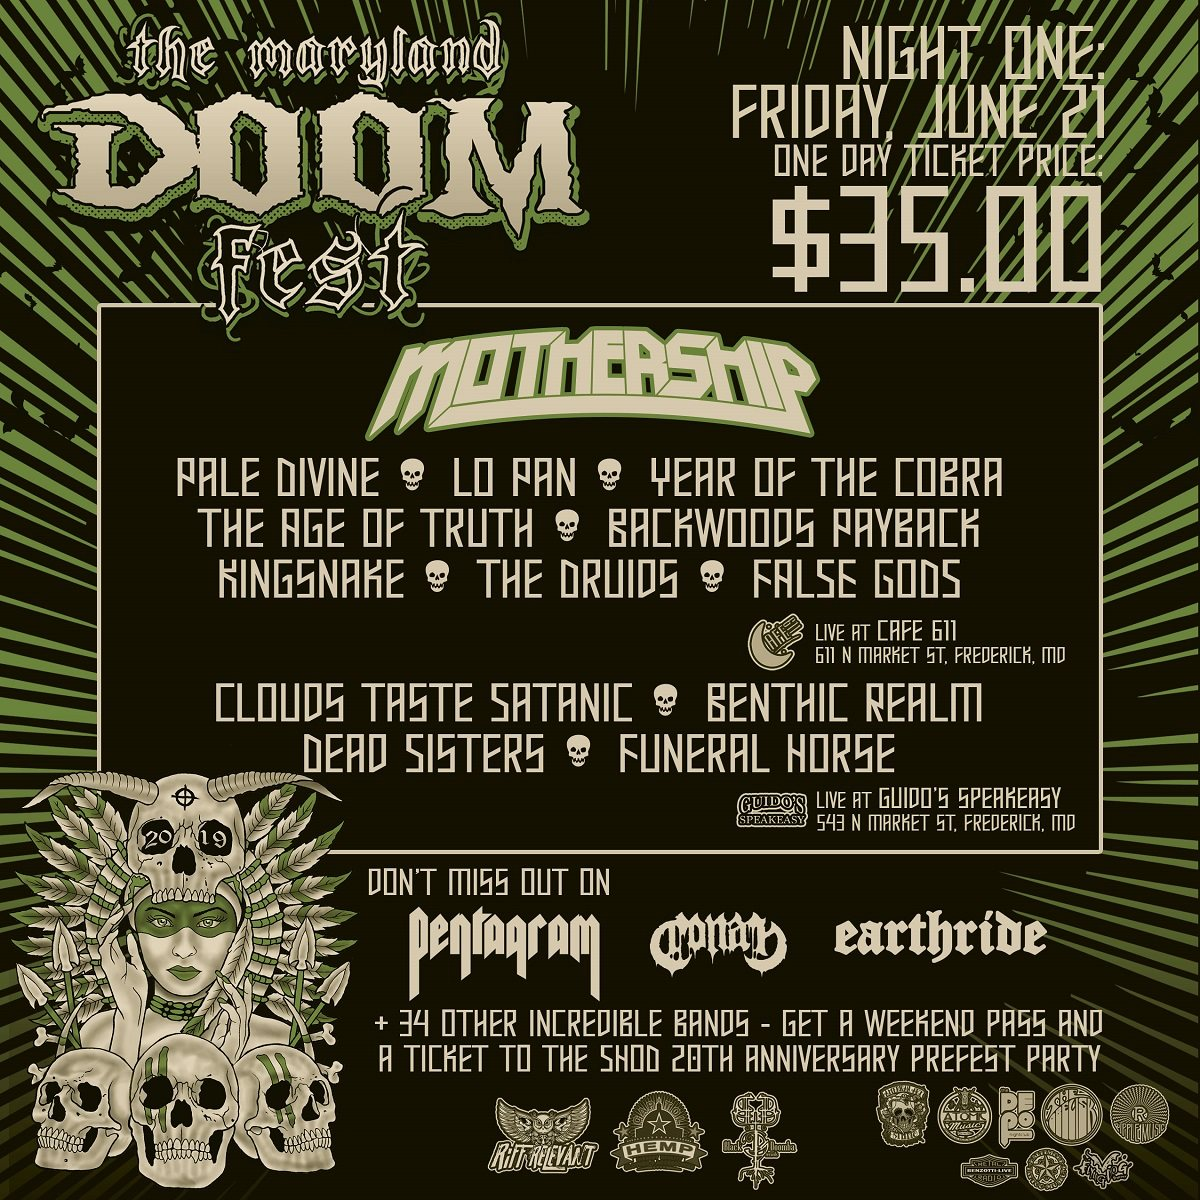 maryland doom fest 2019 night one